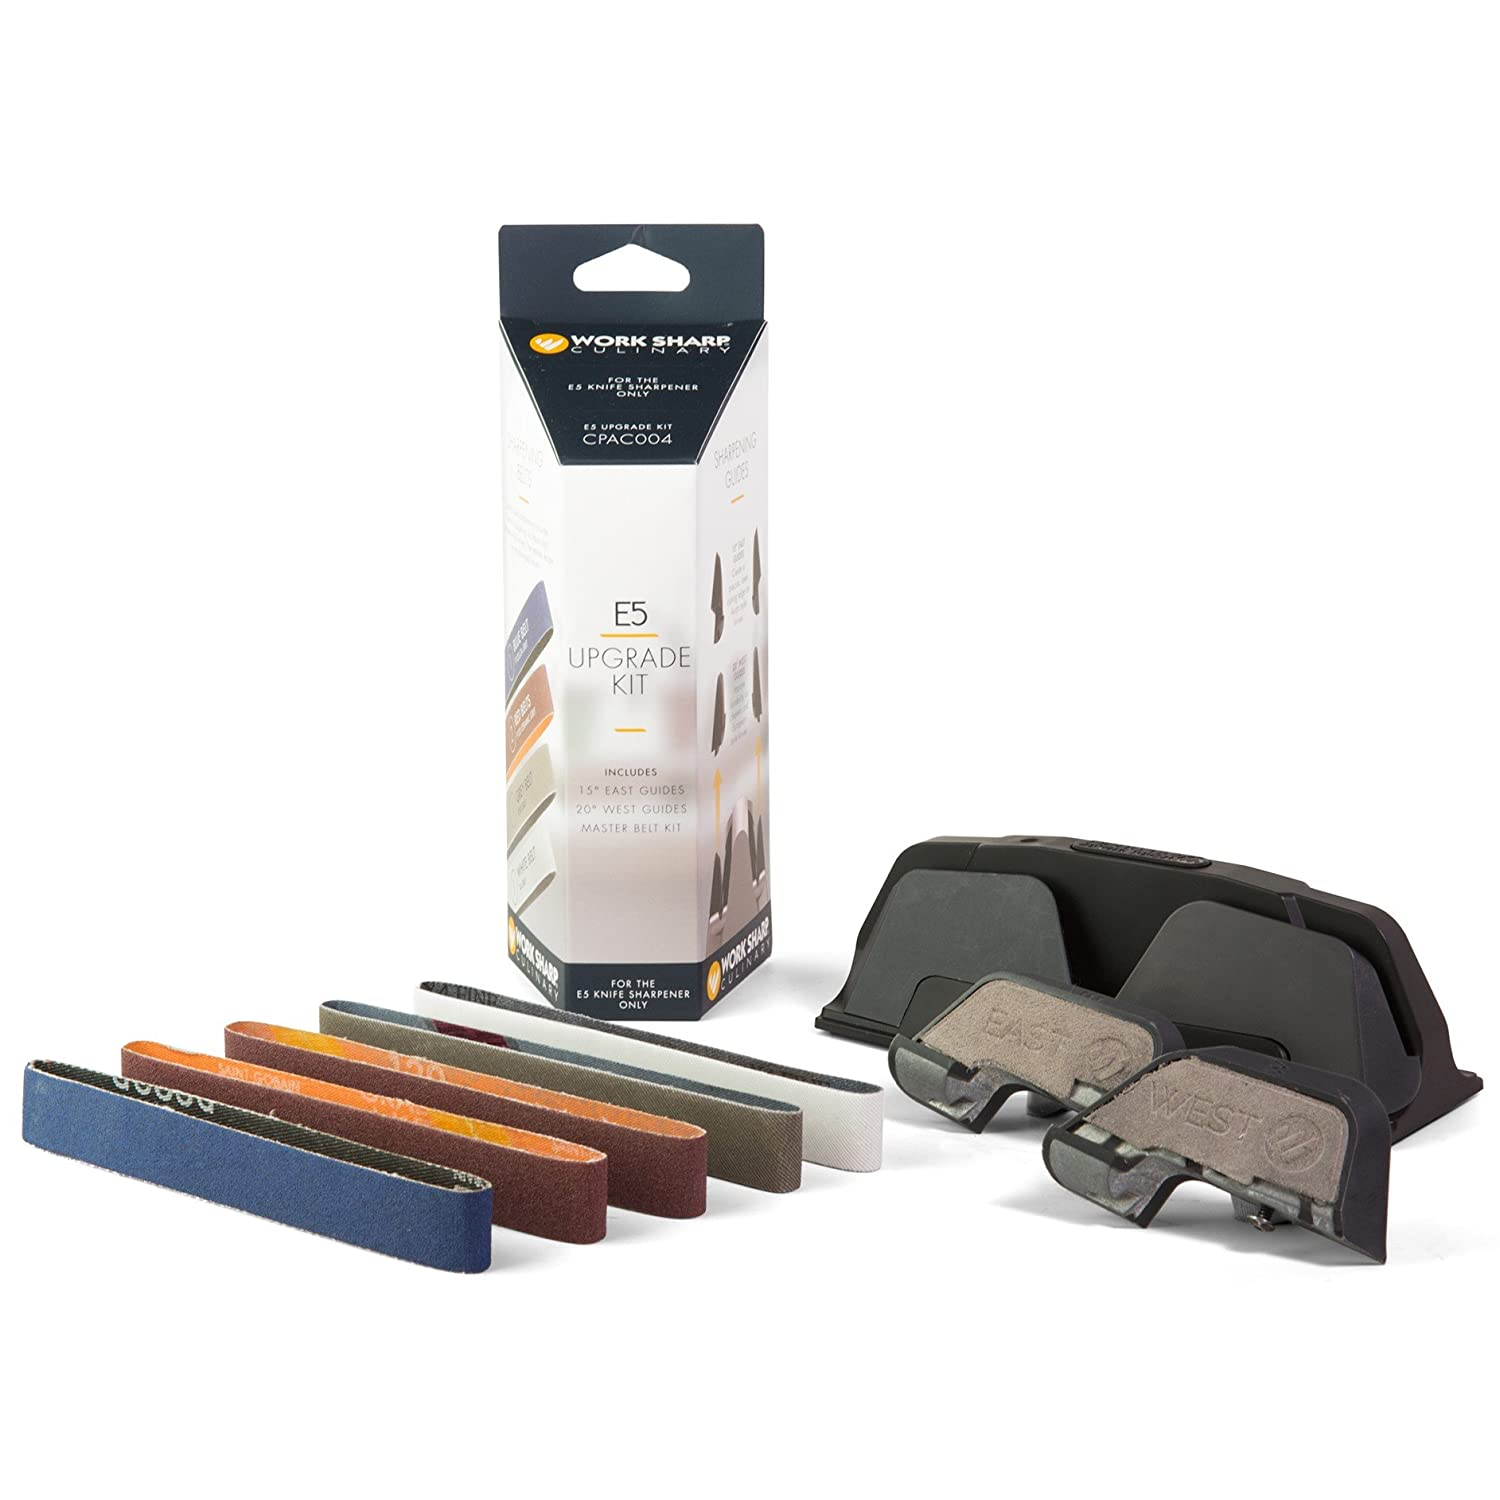 Work Sharp Culinary CPAC004 East and West Guides Upgrade Kit, Multicolor